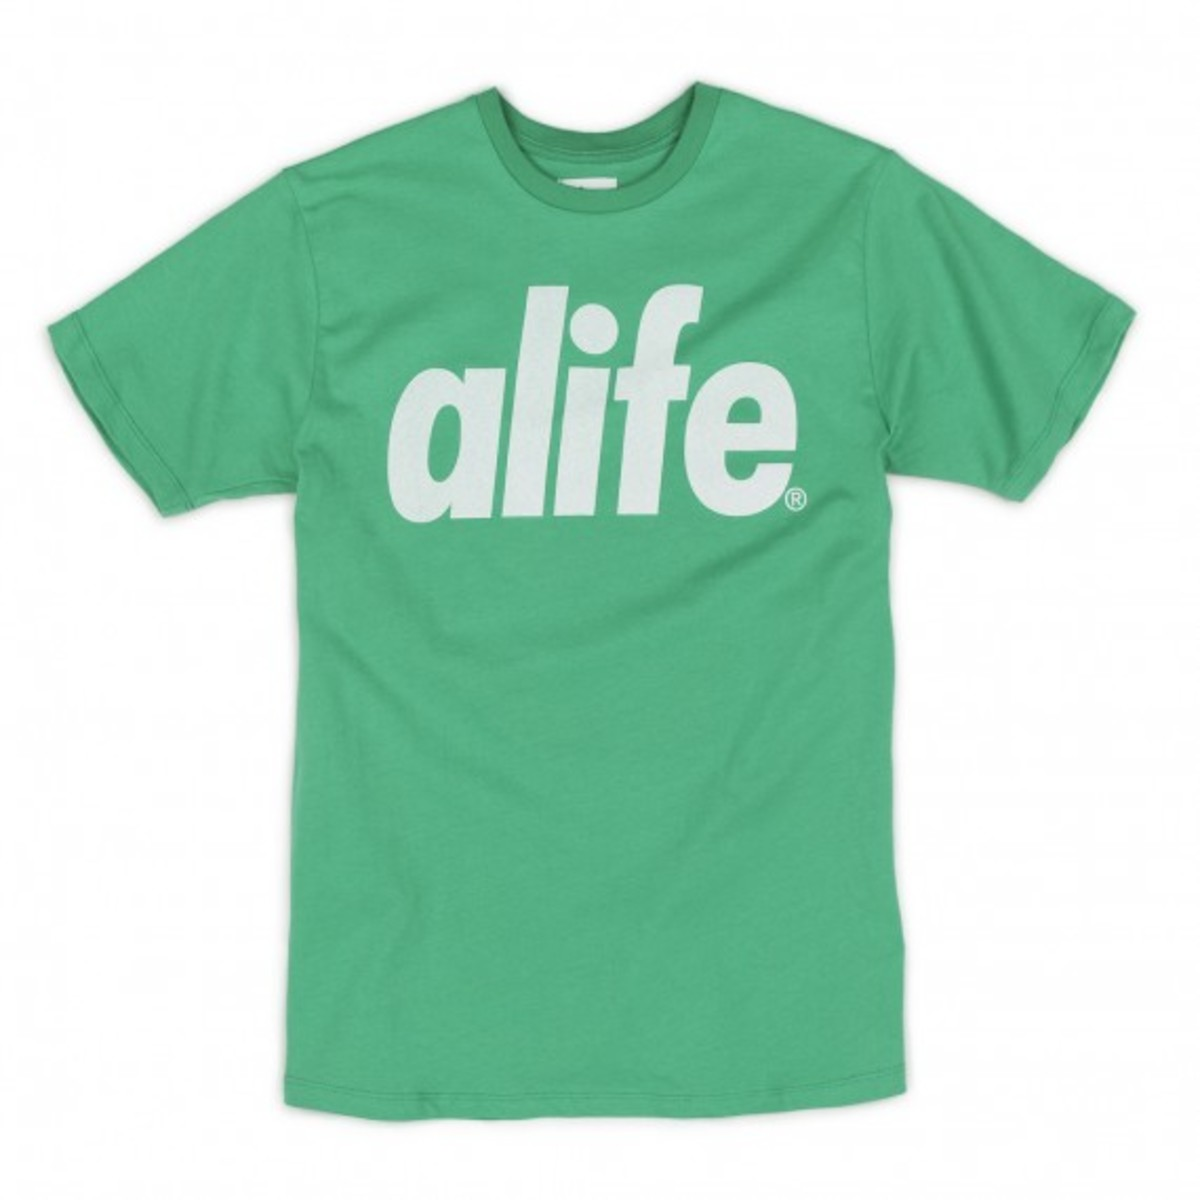 alife-tshirts-accessories-fall-2011-02